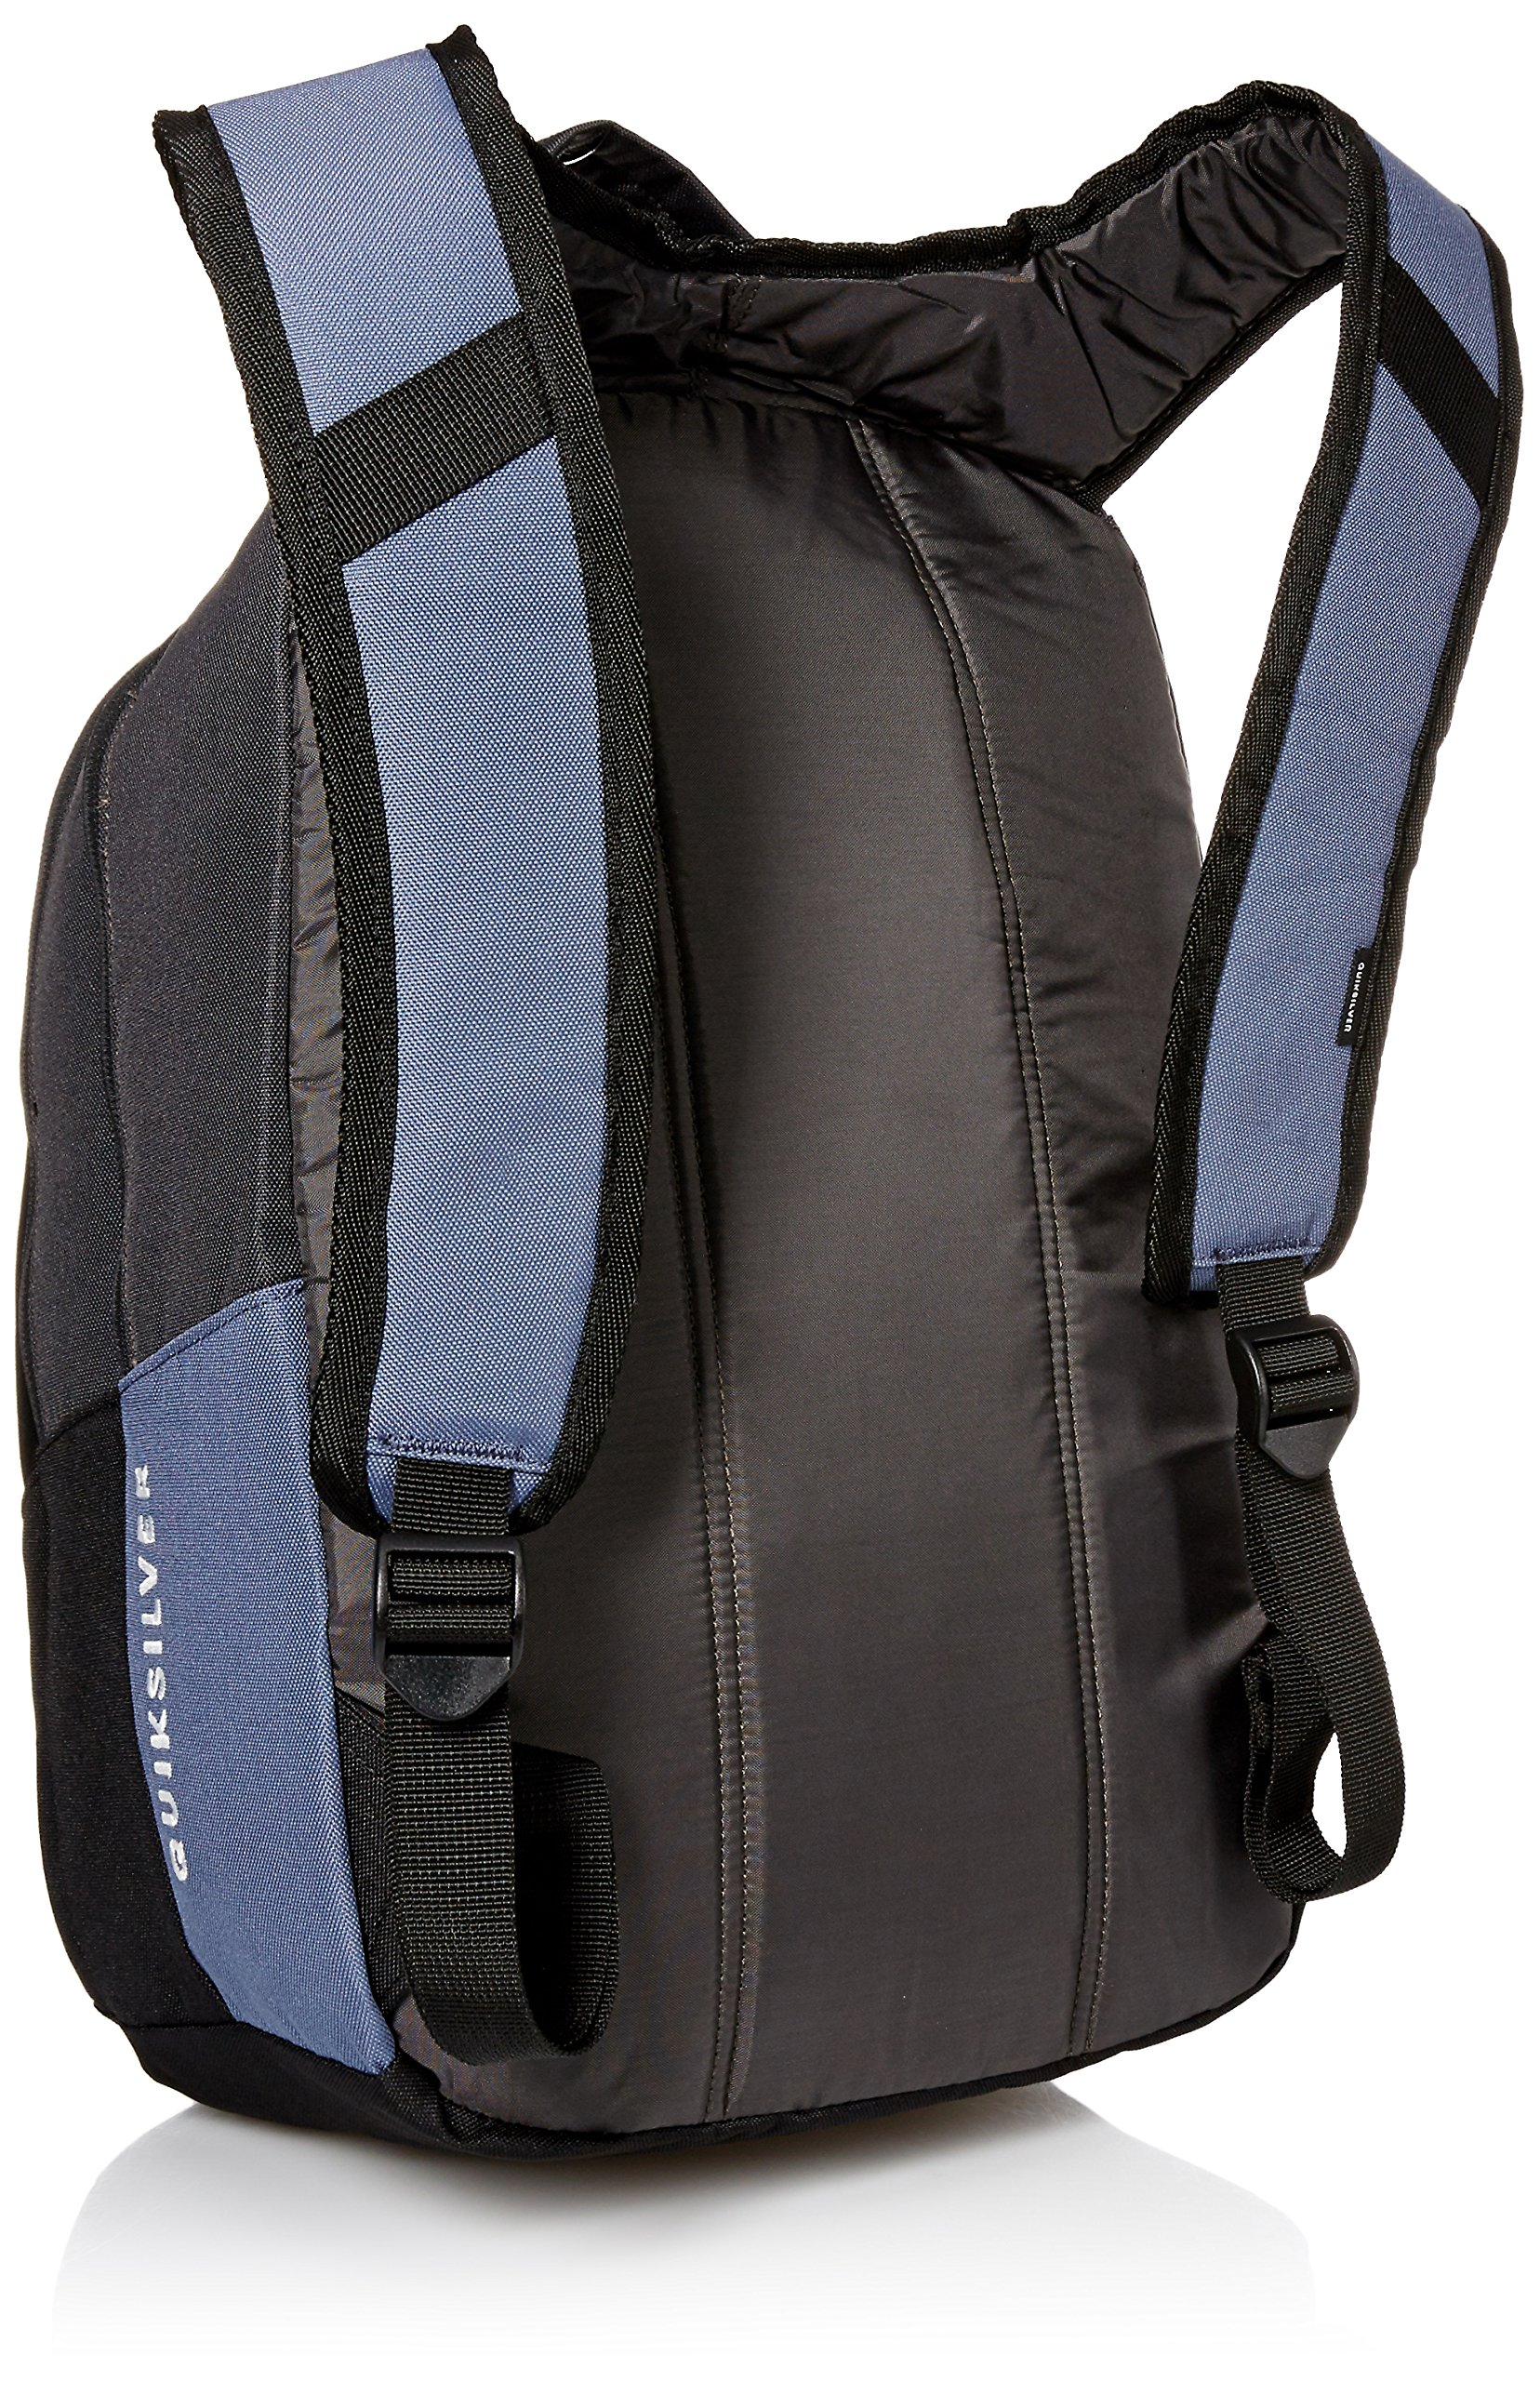 Quiksilver Unisex Burst Backpack, Night Shadow Blue, One Size by Quiksilver (Image #3)